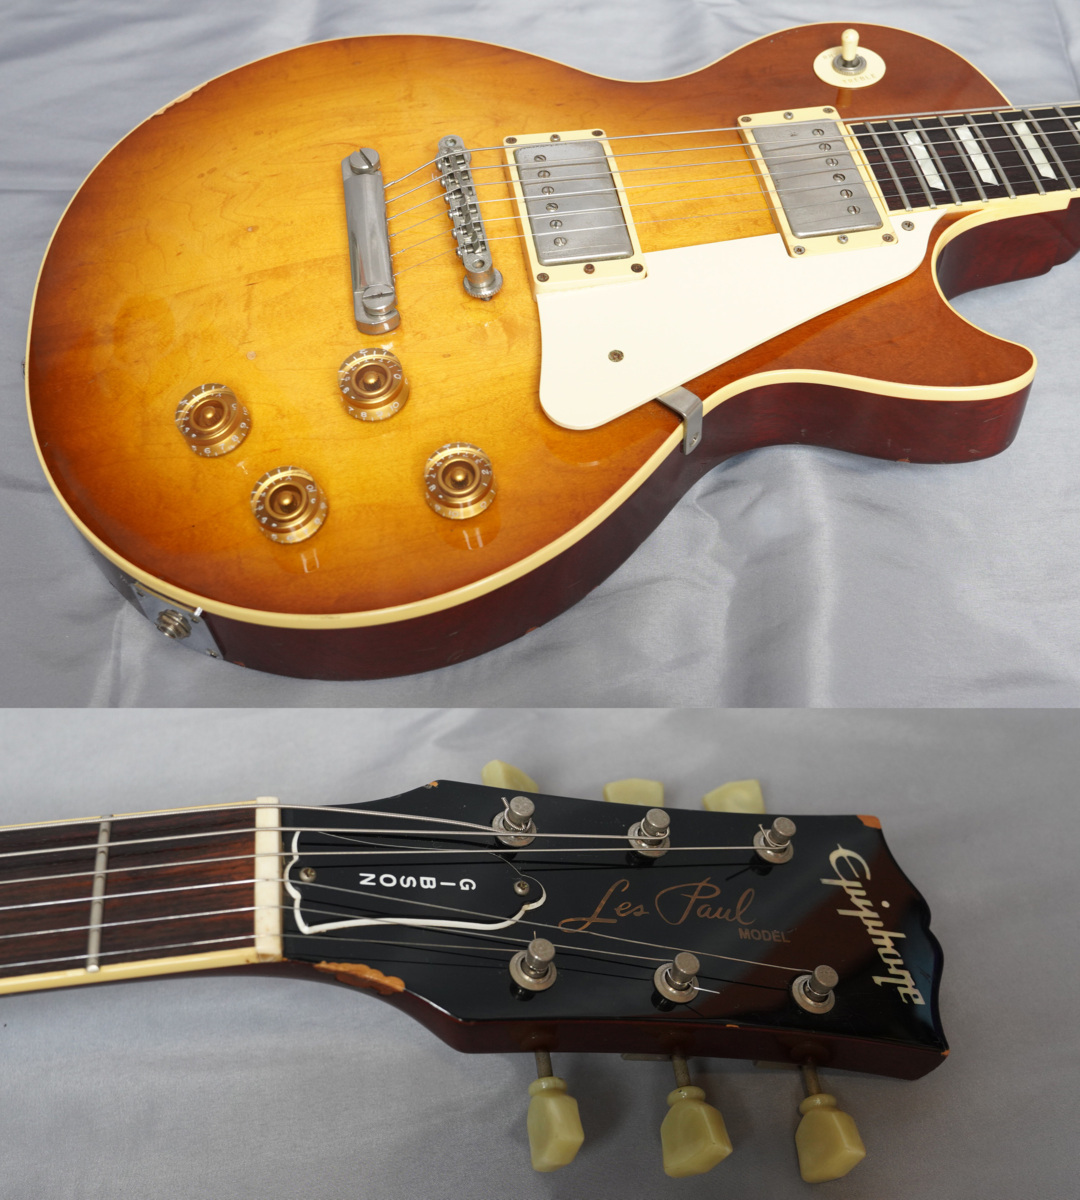 ★Epiphone Japan★Les Paul Standard LPS-80 HB MADE IN JAPAN 日本製 ヘヴィーレリック調 レスポール スタンダード エピフォン★_画像2